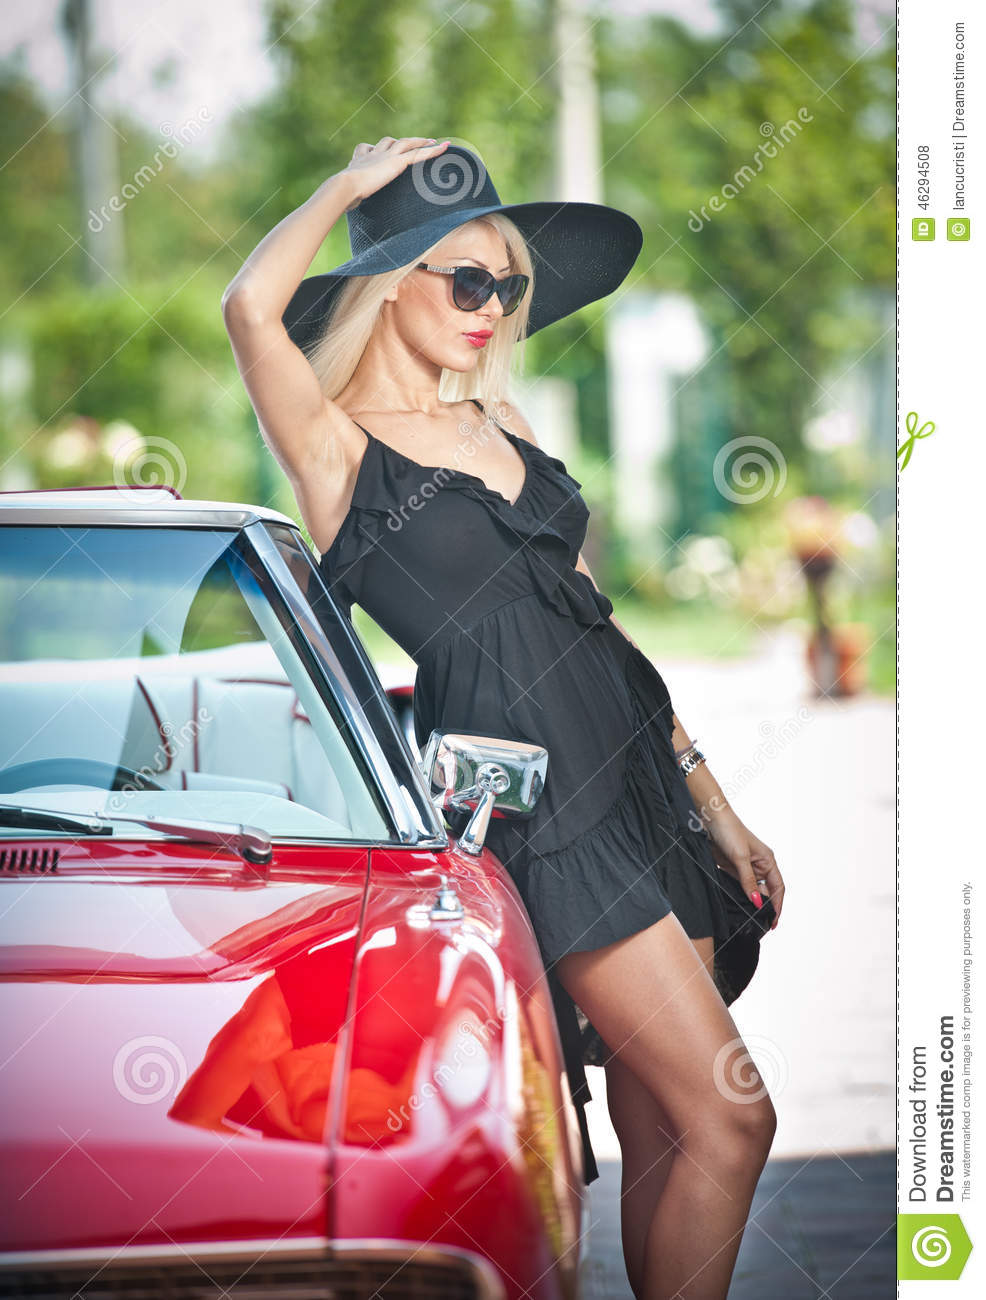 Summer Portrait Of Stylish Blonde Vintage Woman With Long